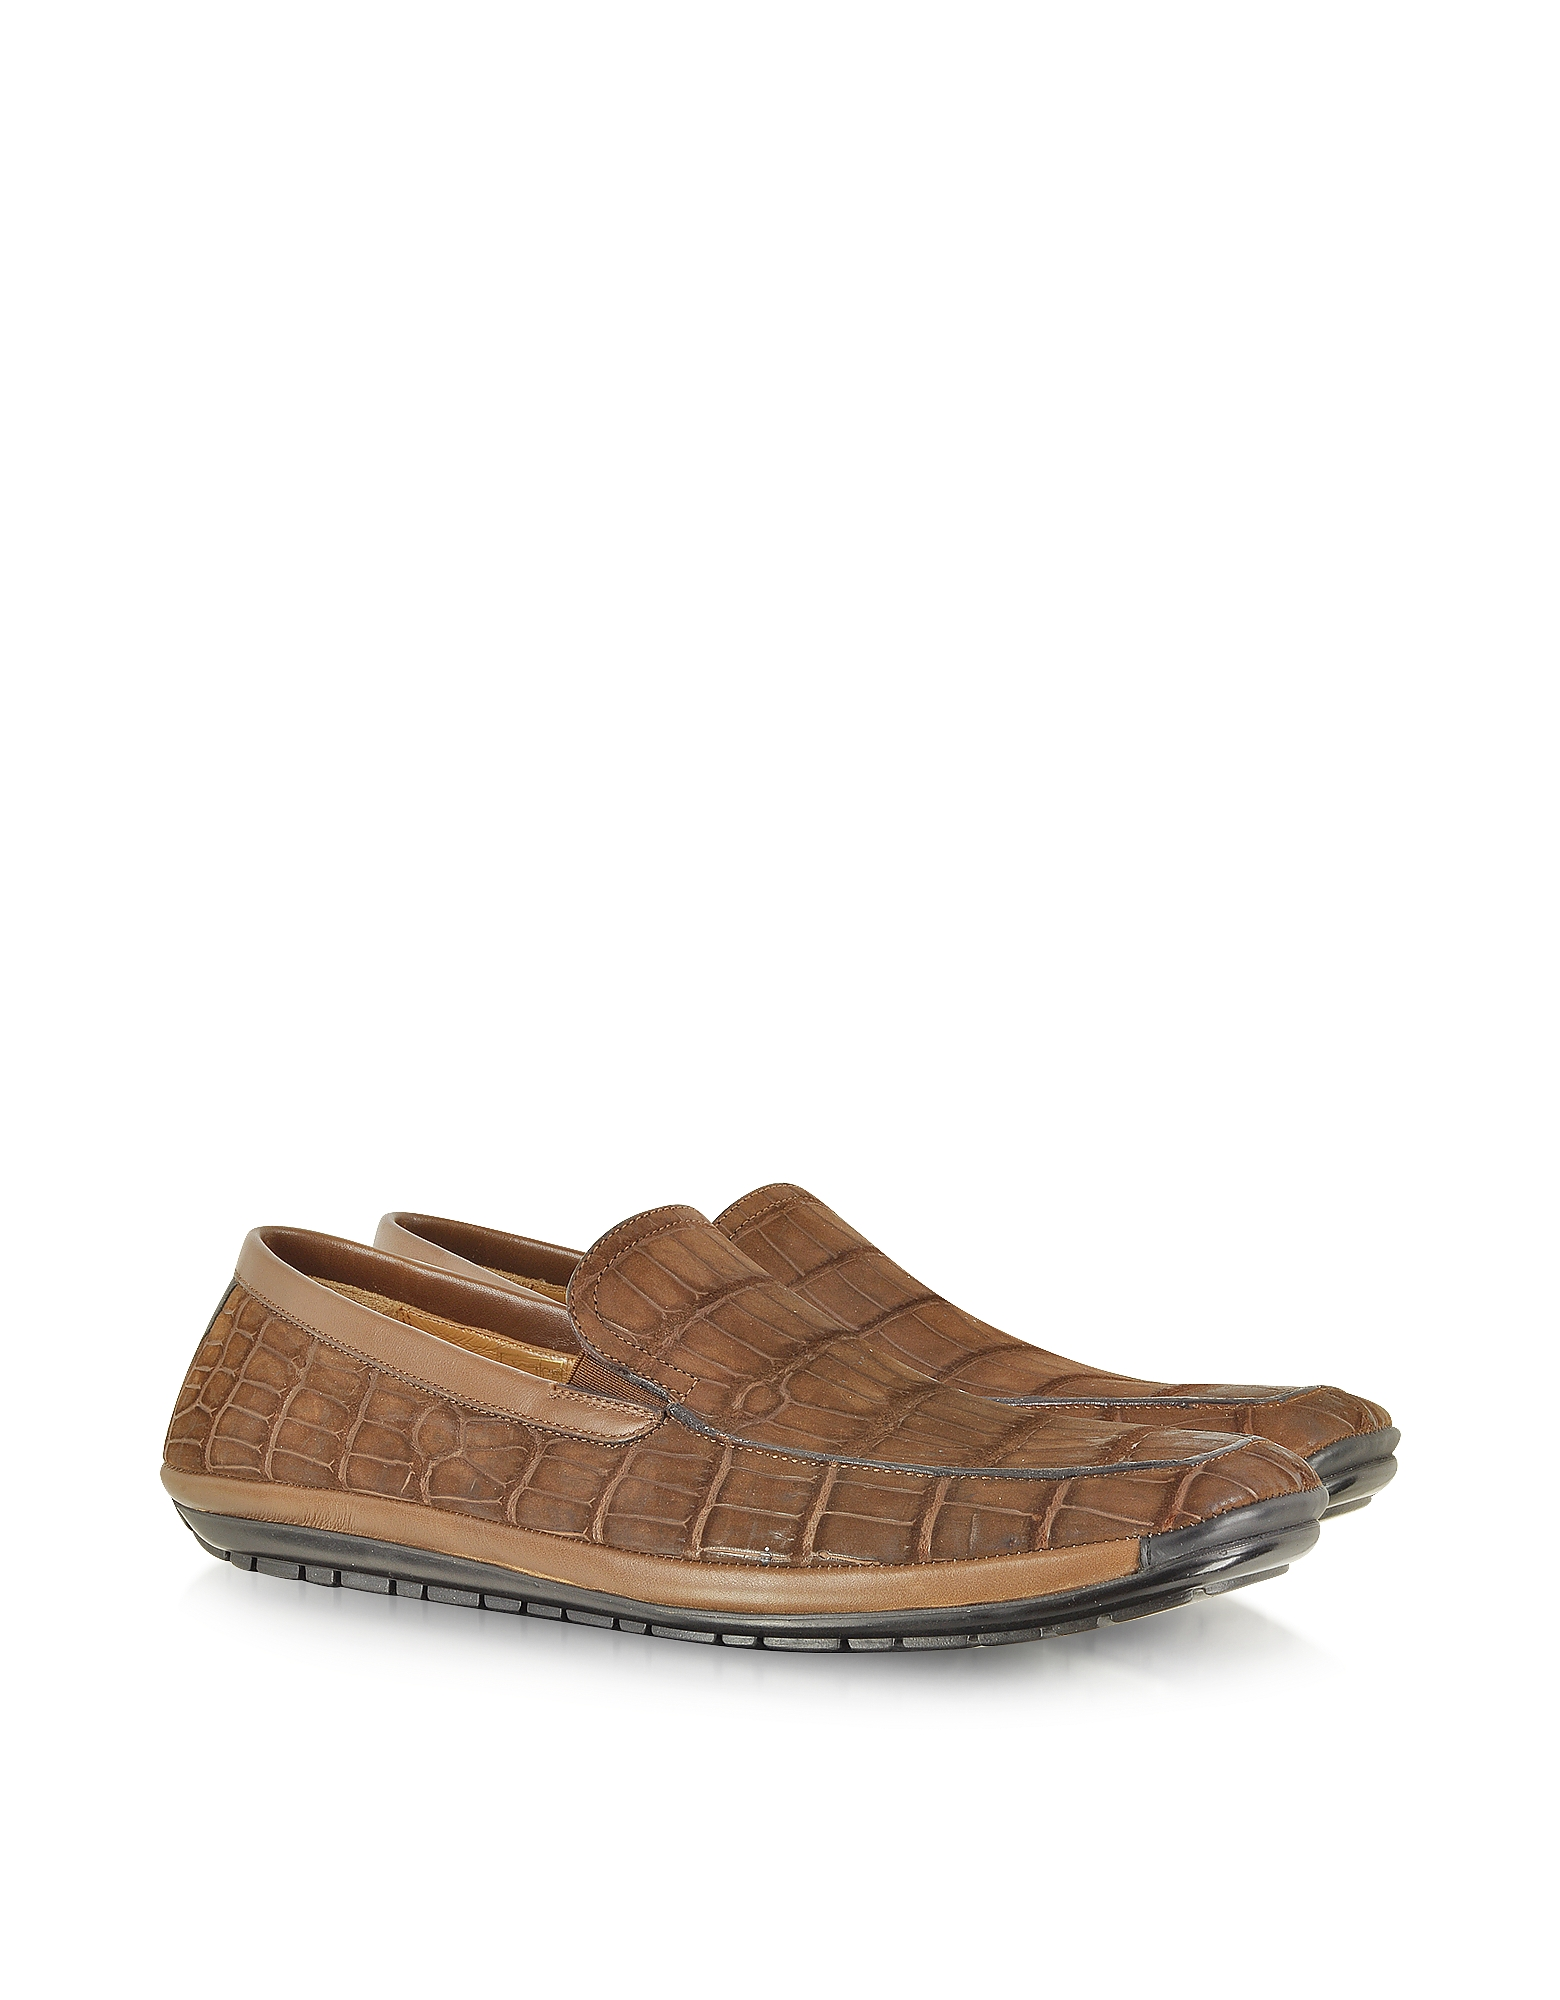 Pakerson Shoes, Brown Sueded Alligator Loafer